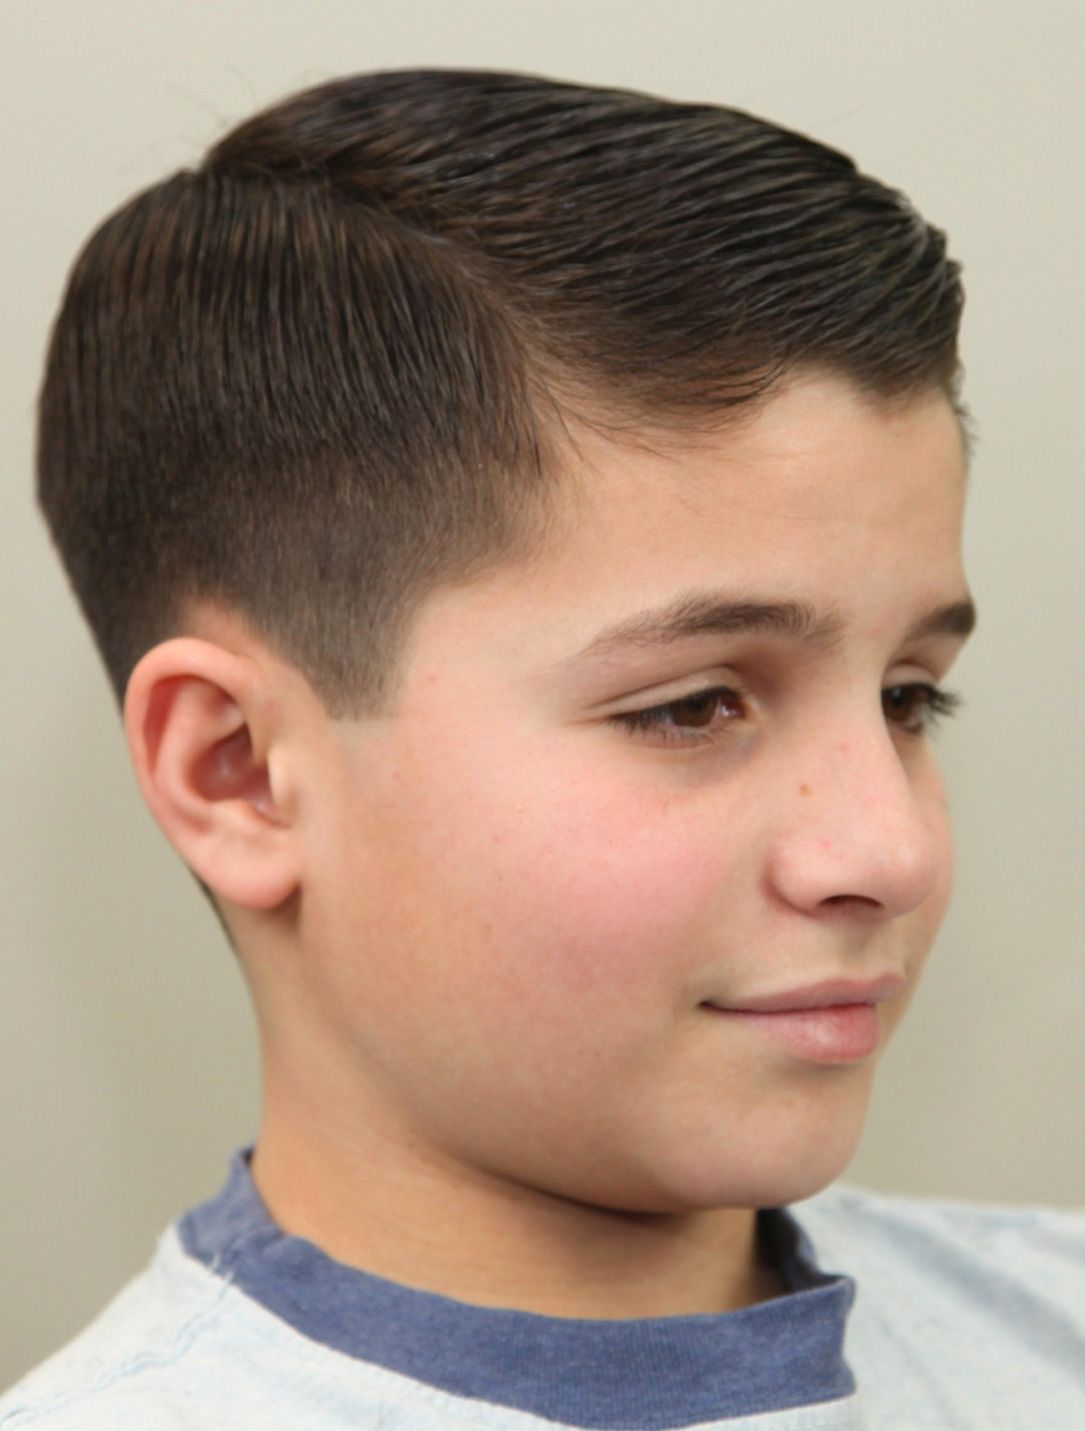 Boy hairstyle long on top hair colors  top haircutsyles   topbest hairstyles